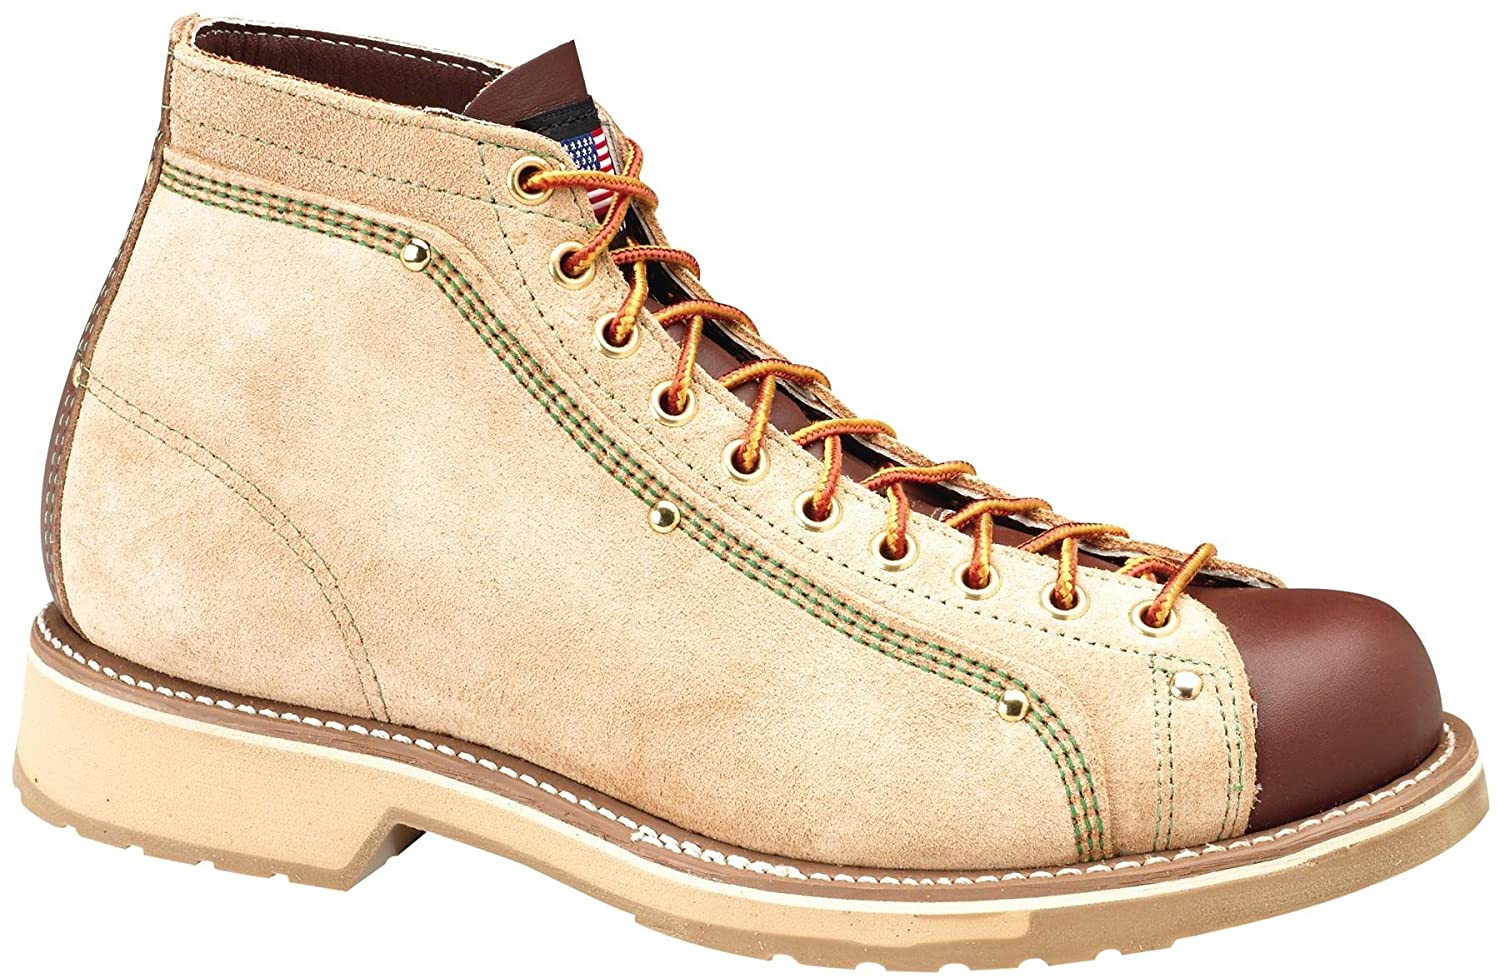 c6bc486ad1c Thorogood Men's Roofer Ankle Boots, Brown, 14 E: Amazon.co.uk: Shoes ...